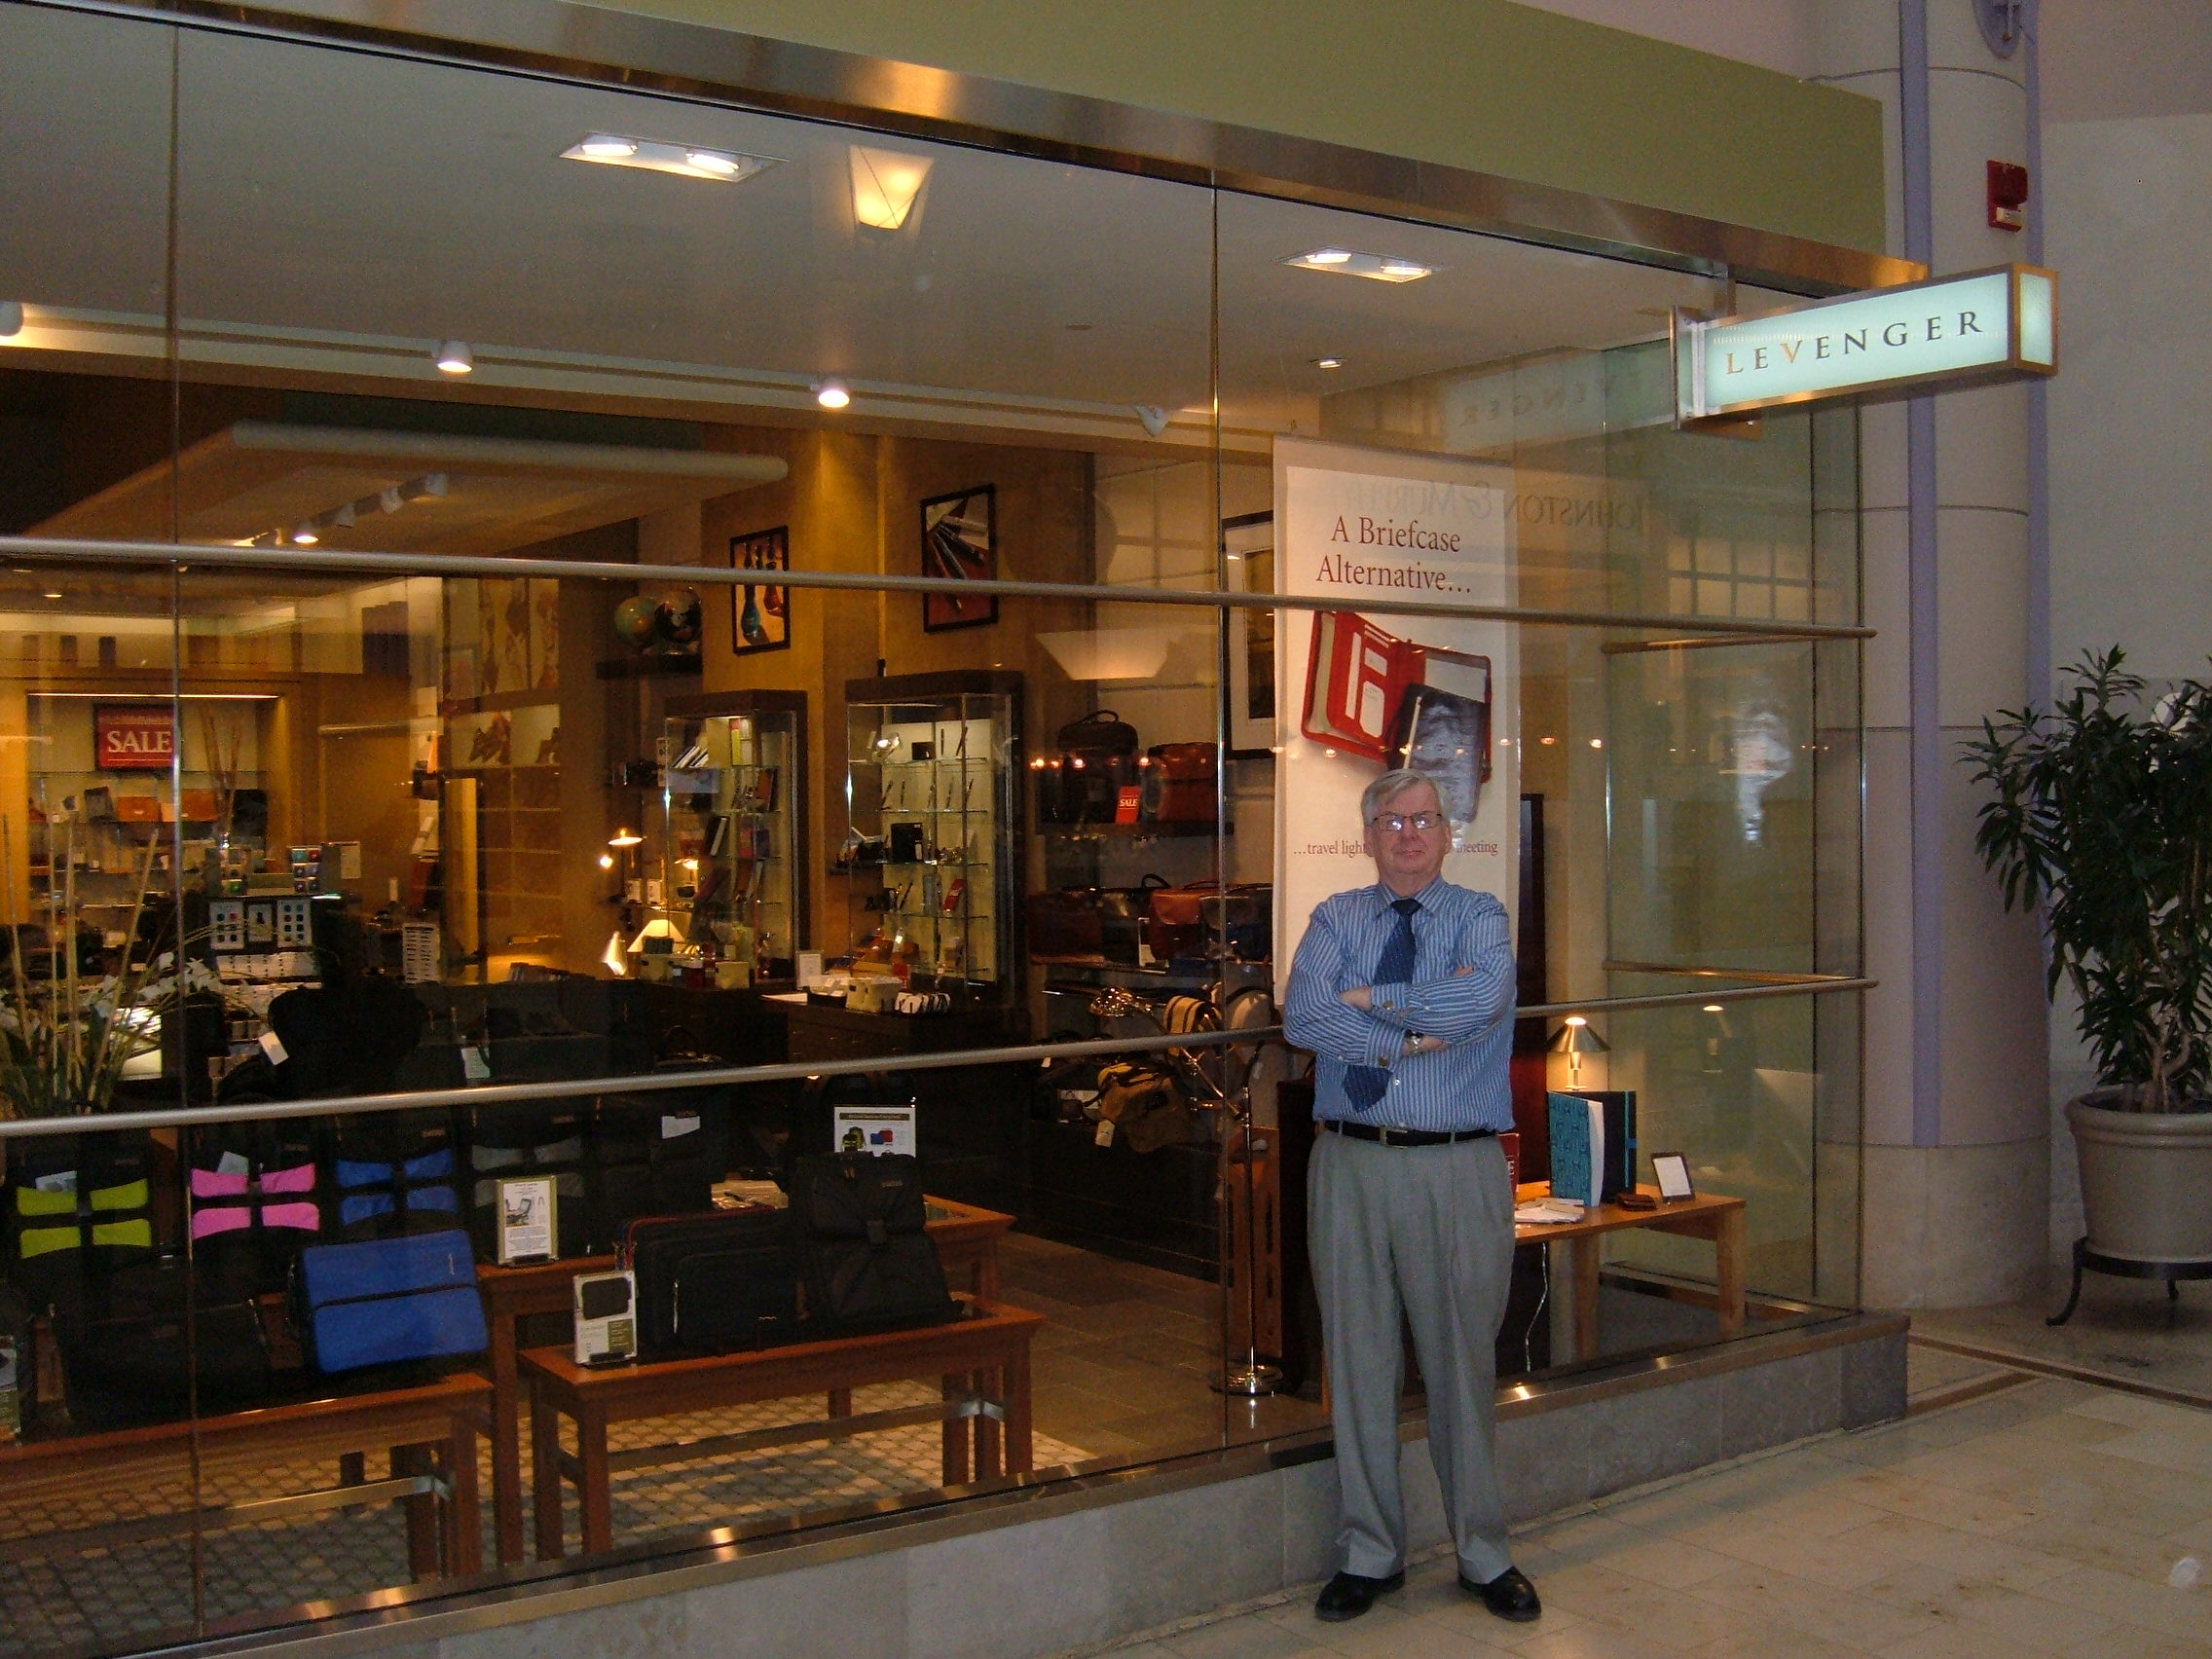 Bill Hallion, our store manager in our Boston Pru Center store, invites you to stop in when you're in town.